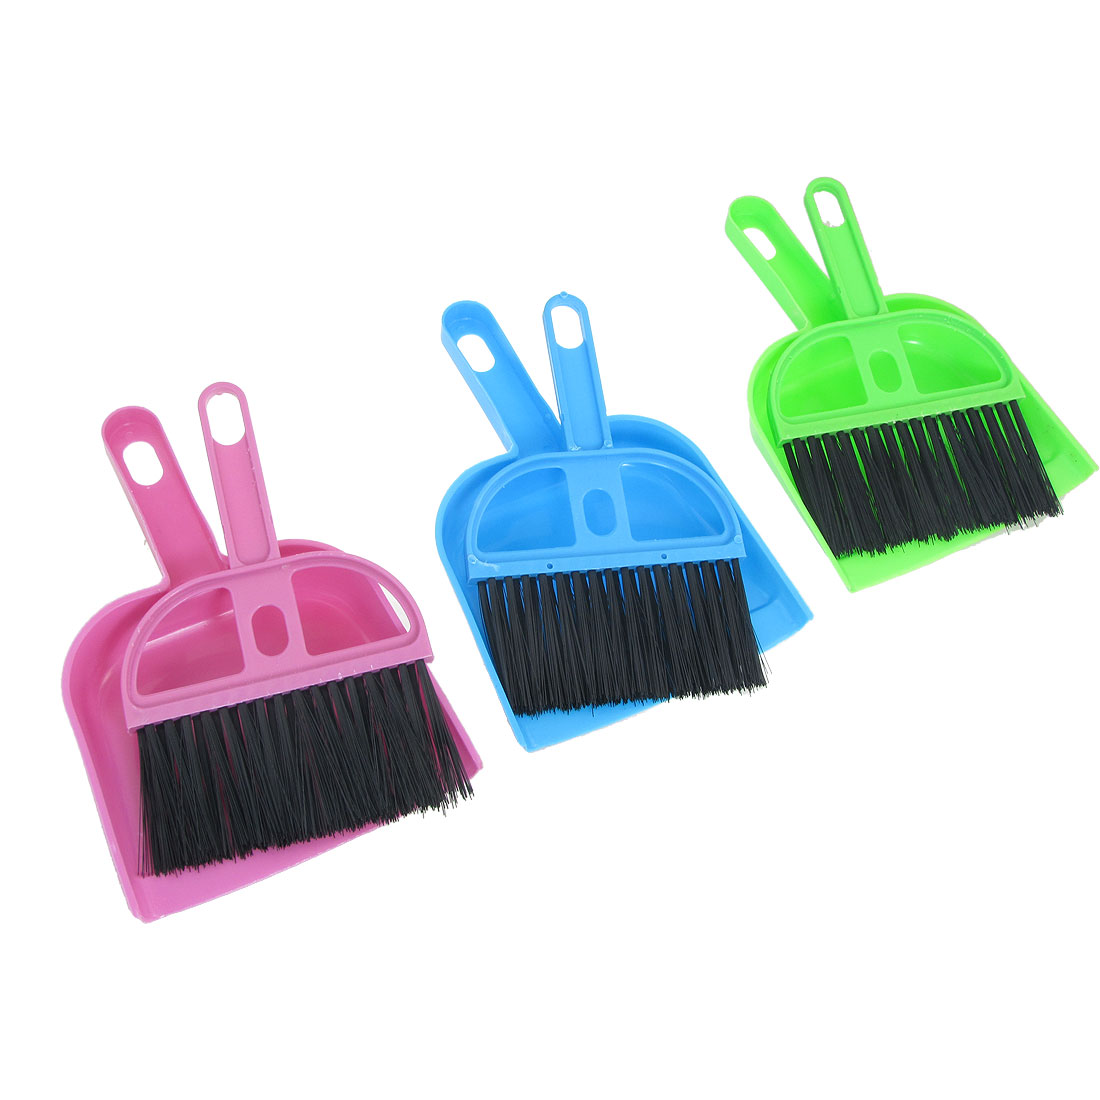 3 Pcs Assorted Color Car Keyboard Cleaning Whisk Broom Dustpan Set